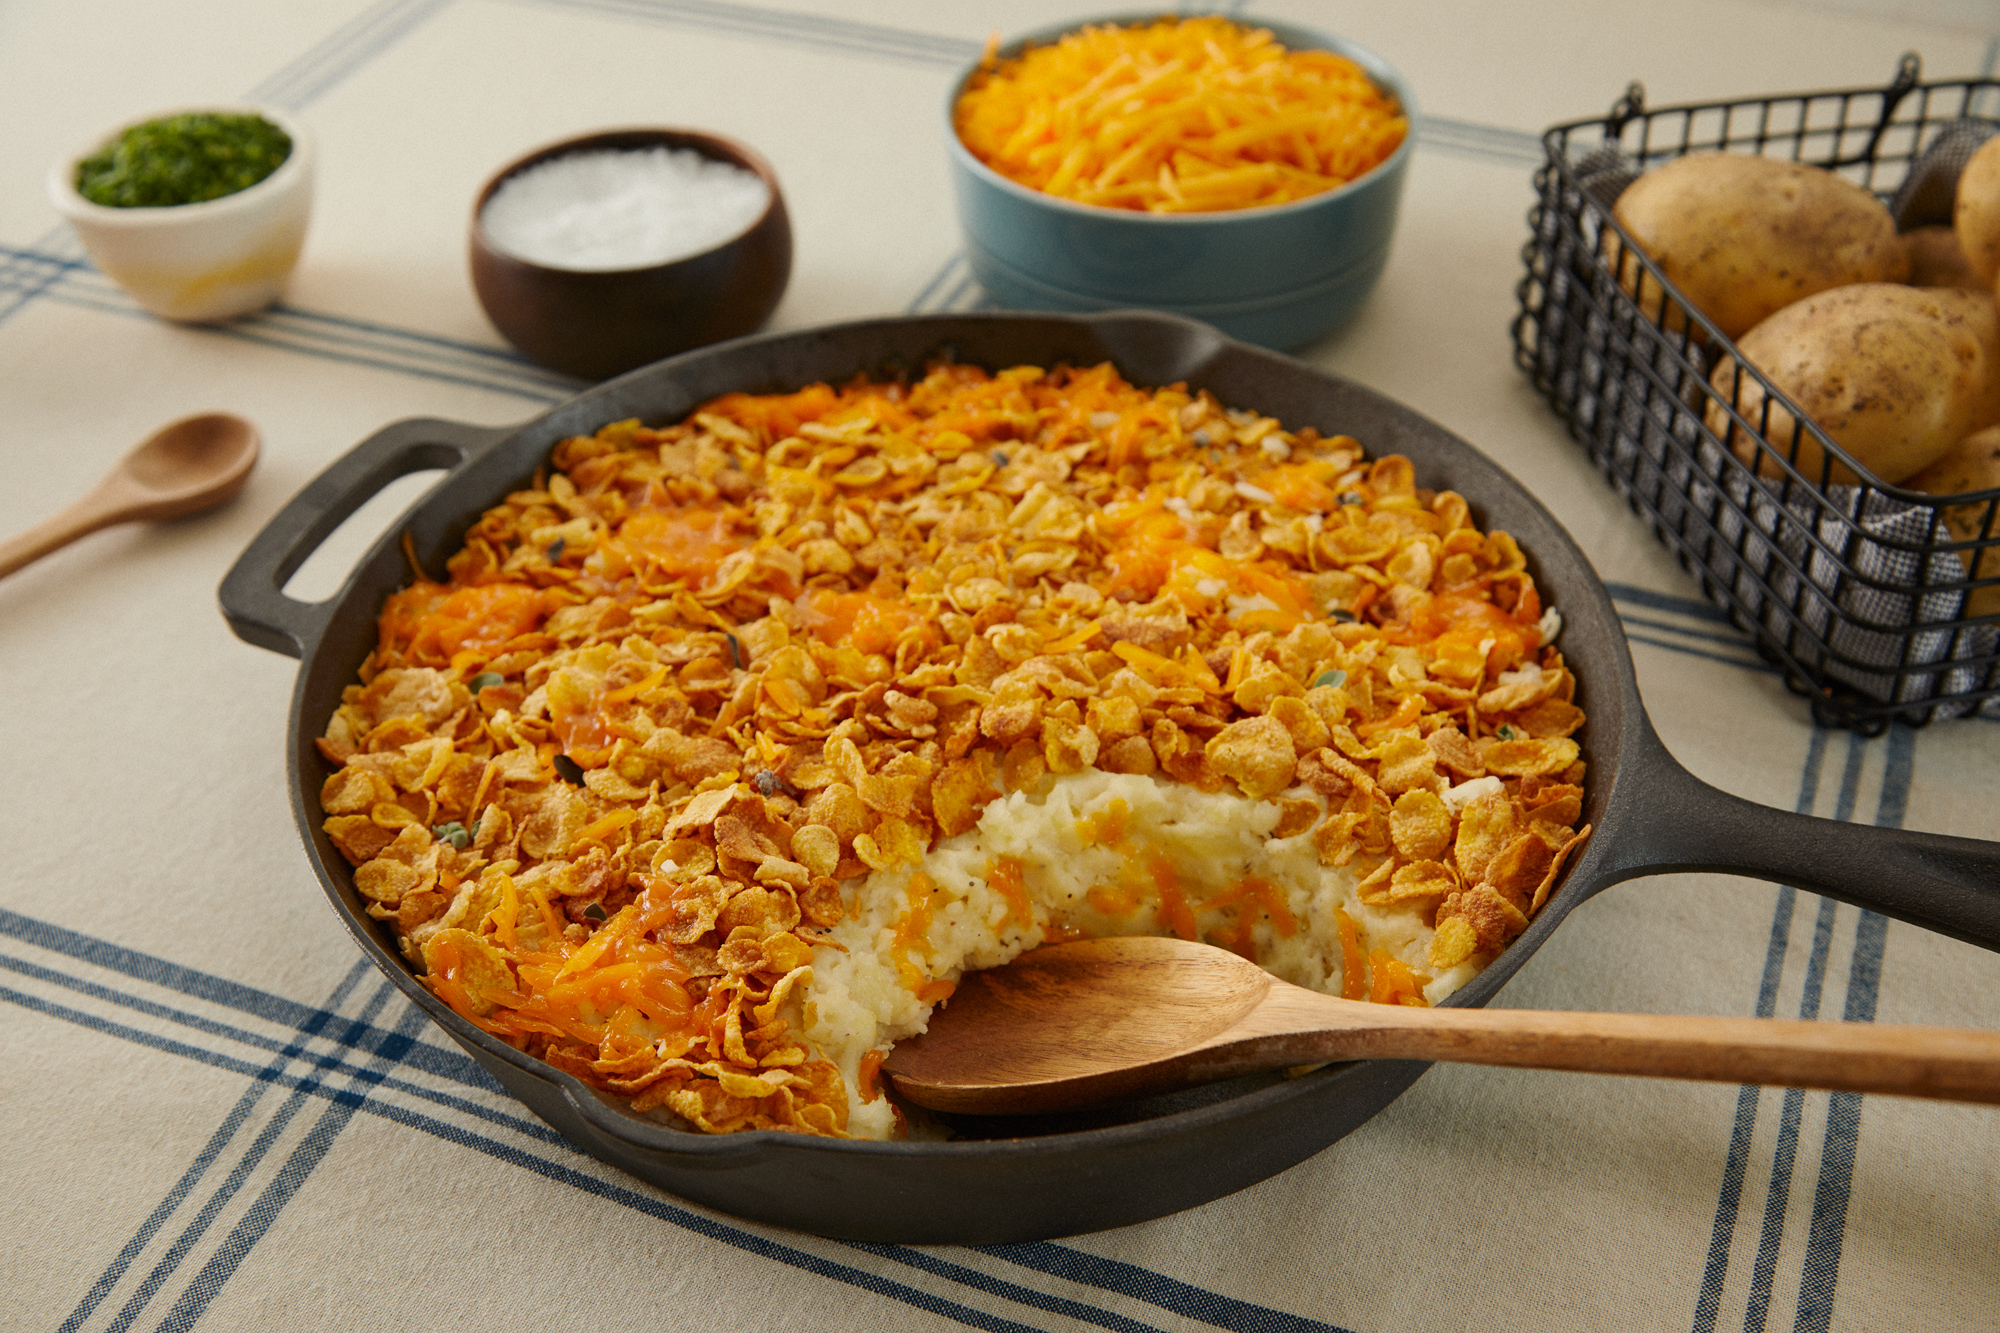 Cache Valley Creamery Funeral Potatoes